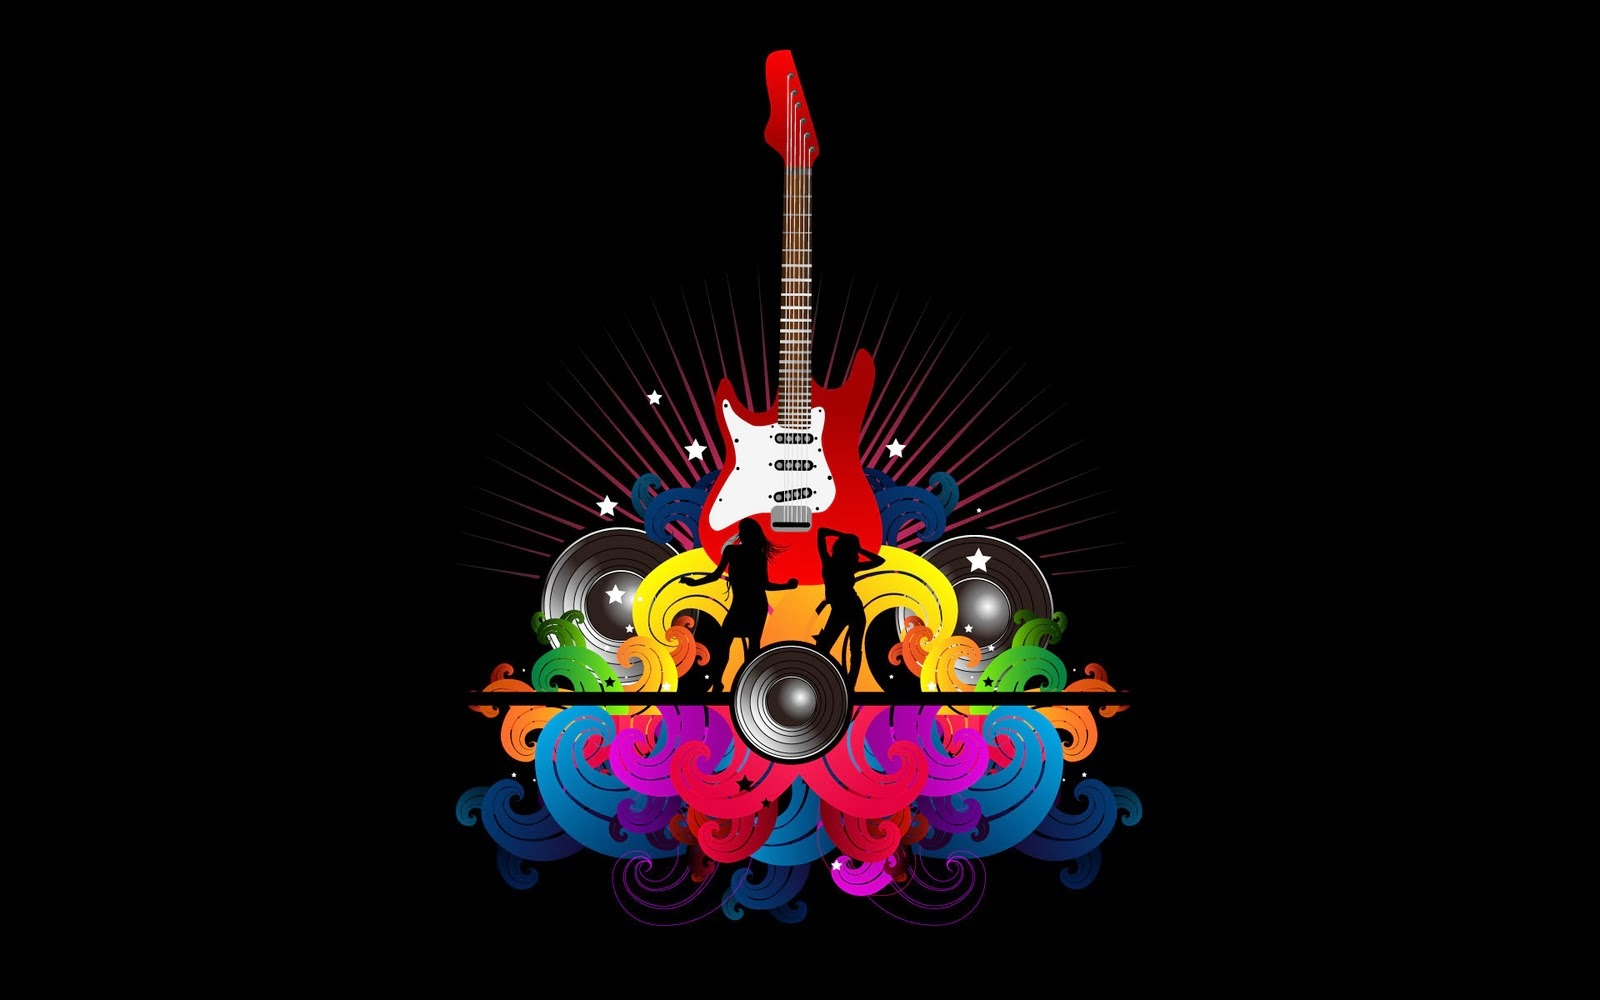 Black Music Wallpaper With A Red Electric Guitar And Two People Dancing